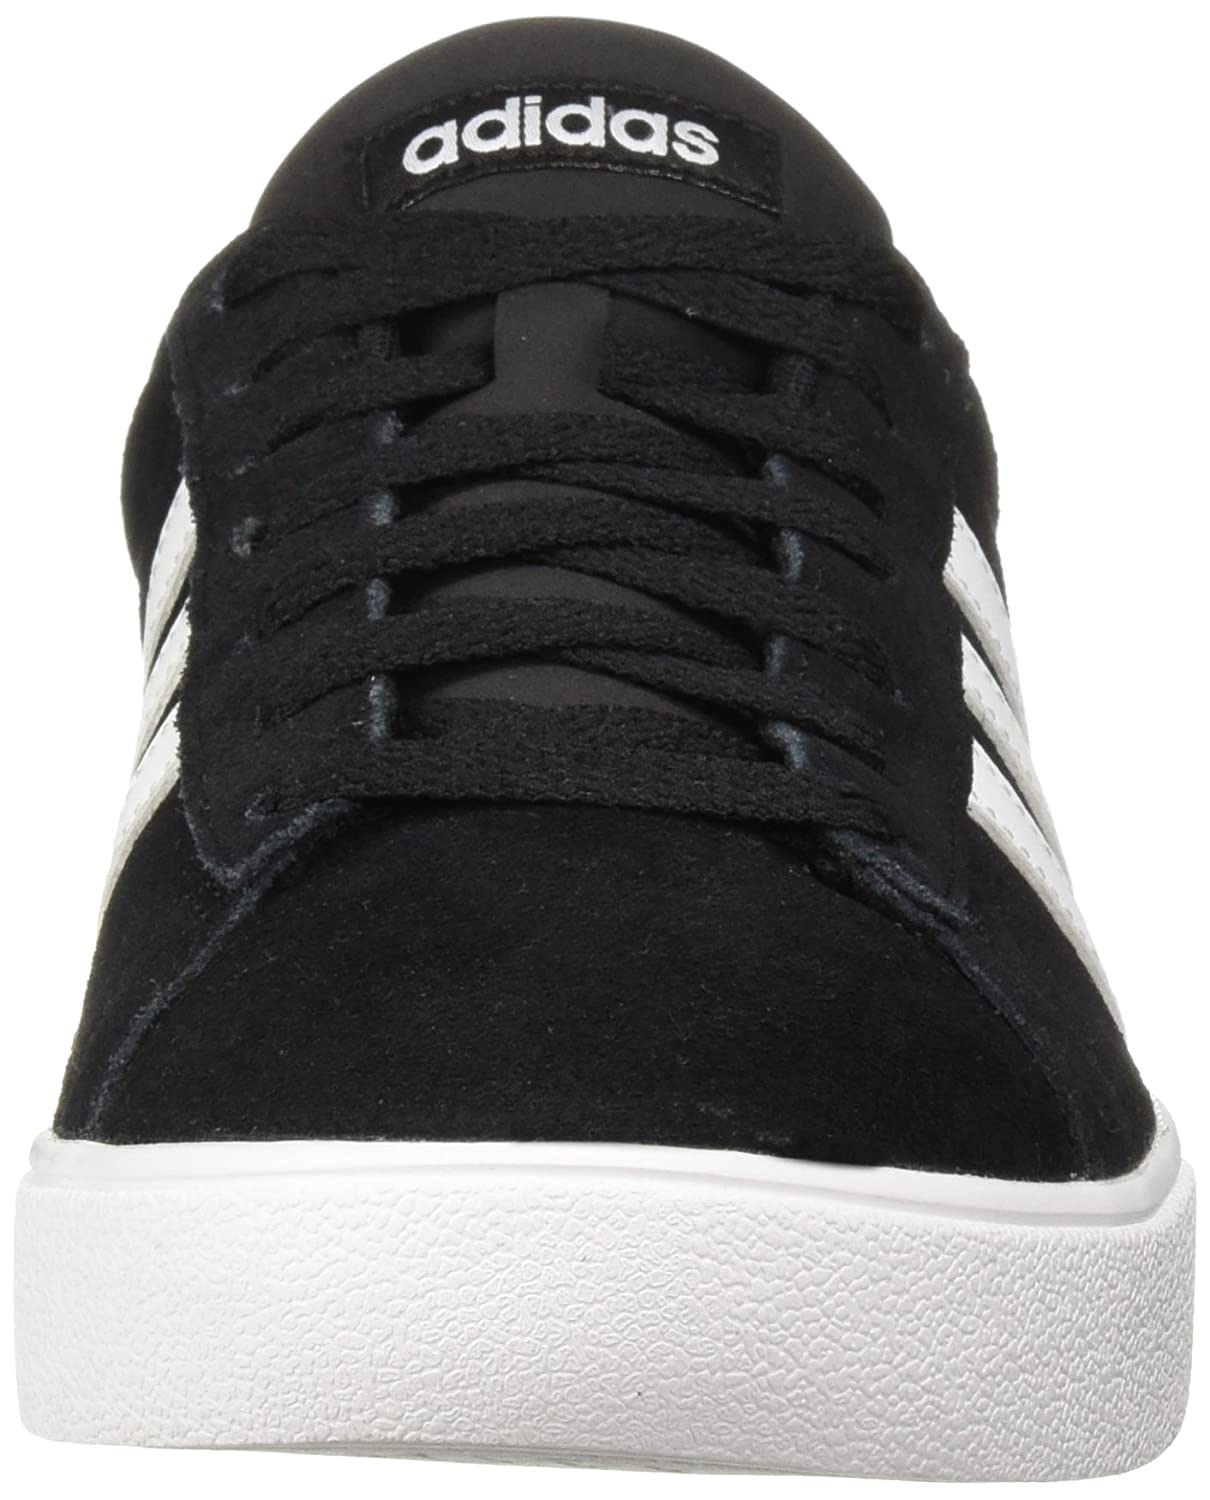 super popular 87cf0 ced71 adidas - Daily 2.0 Homme Amazon.fr Chaussures et Sacs